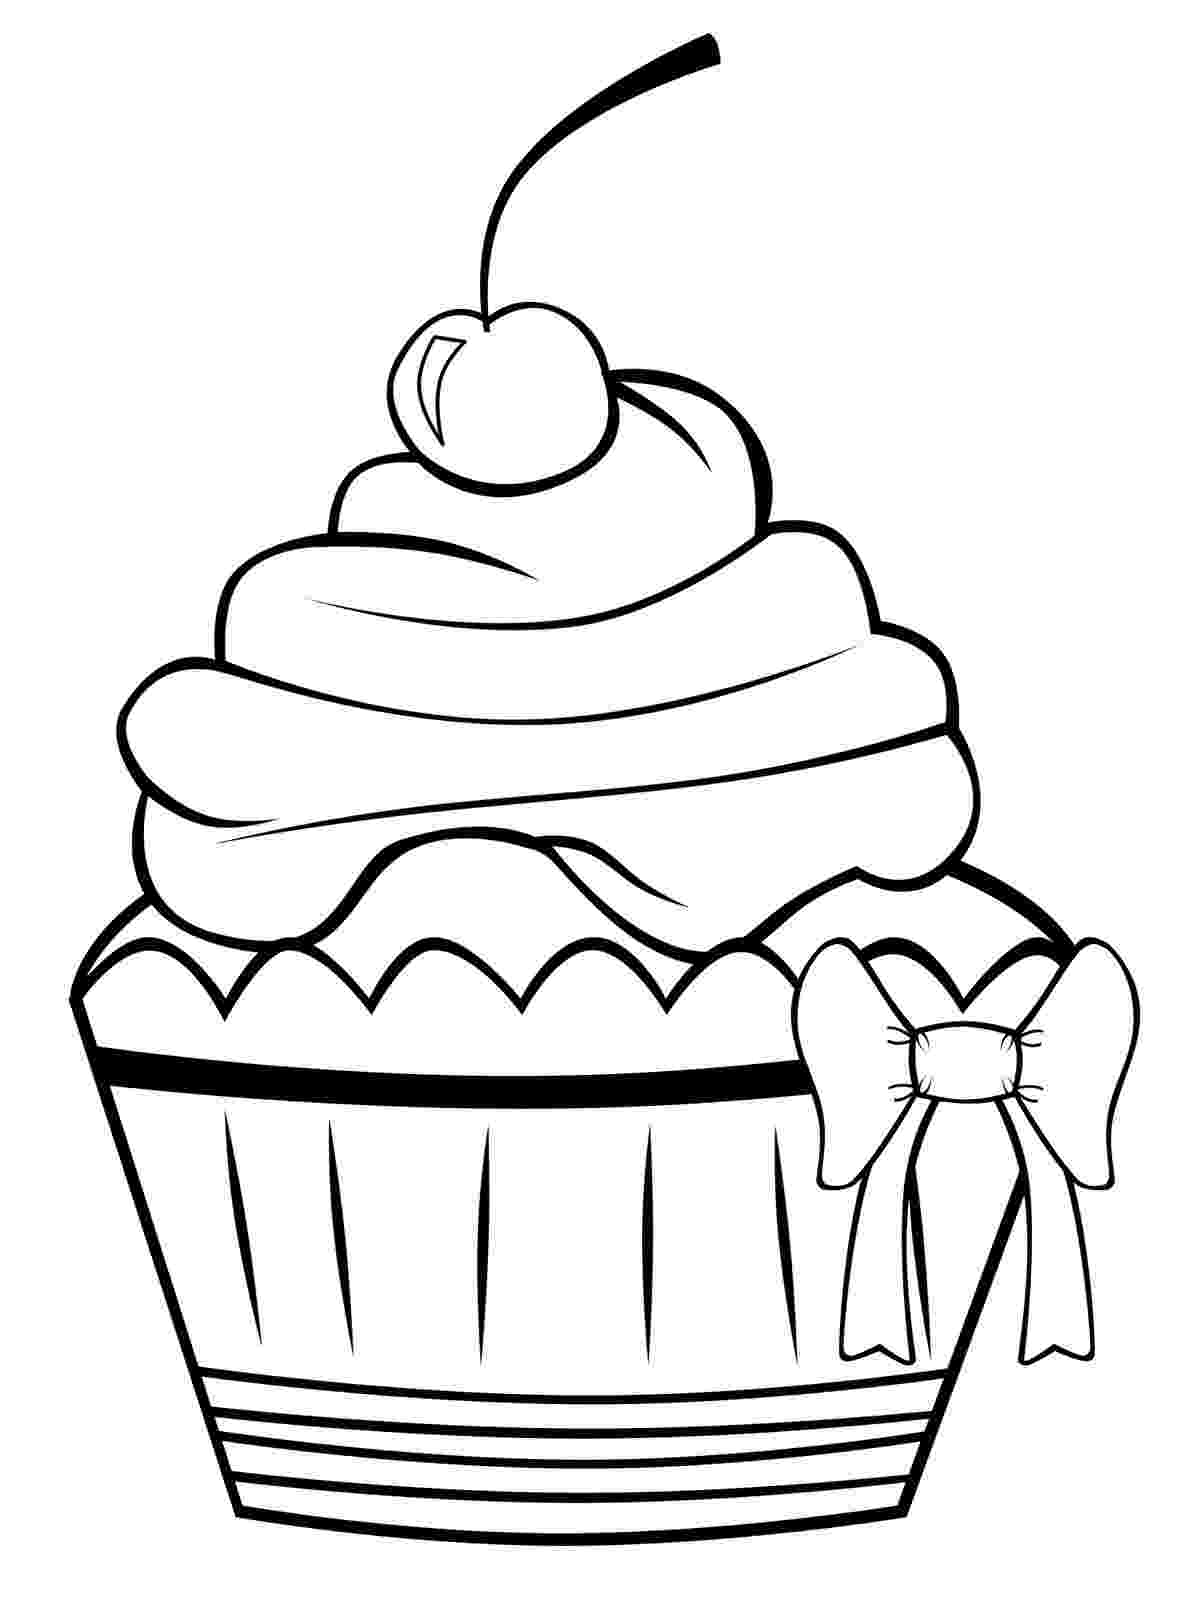 coloring pages cupcakes free printable cupcake coloring pages for kids cool2bkids pages coloring cupcakes